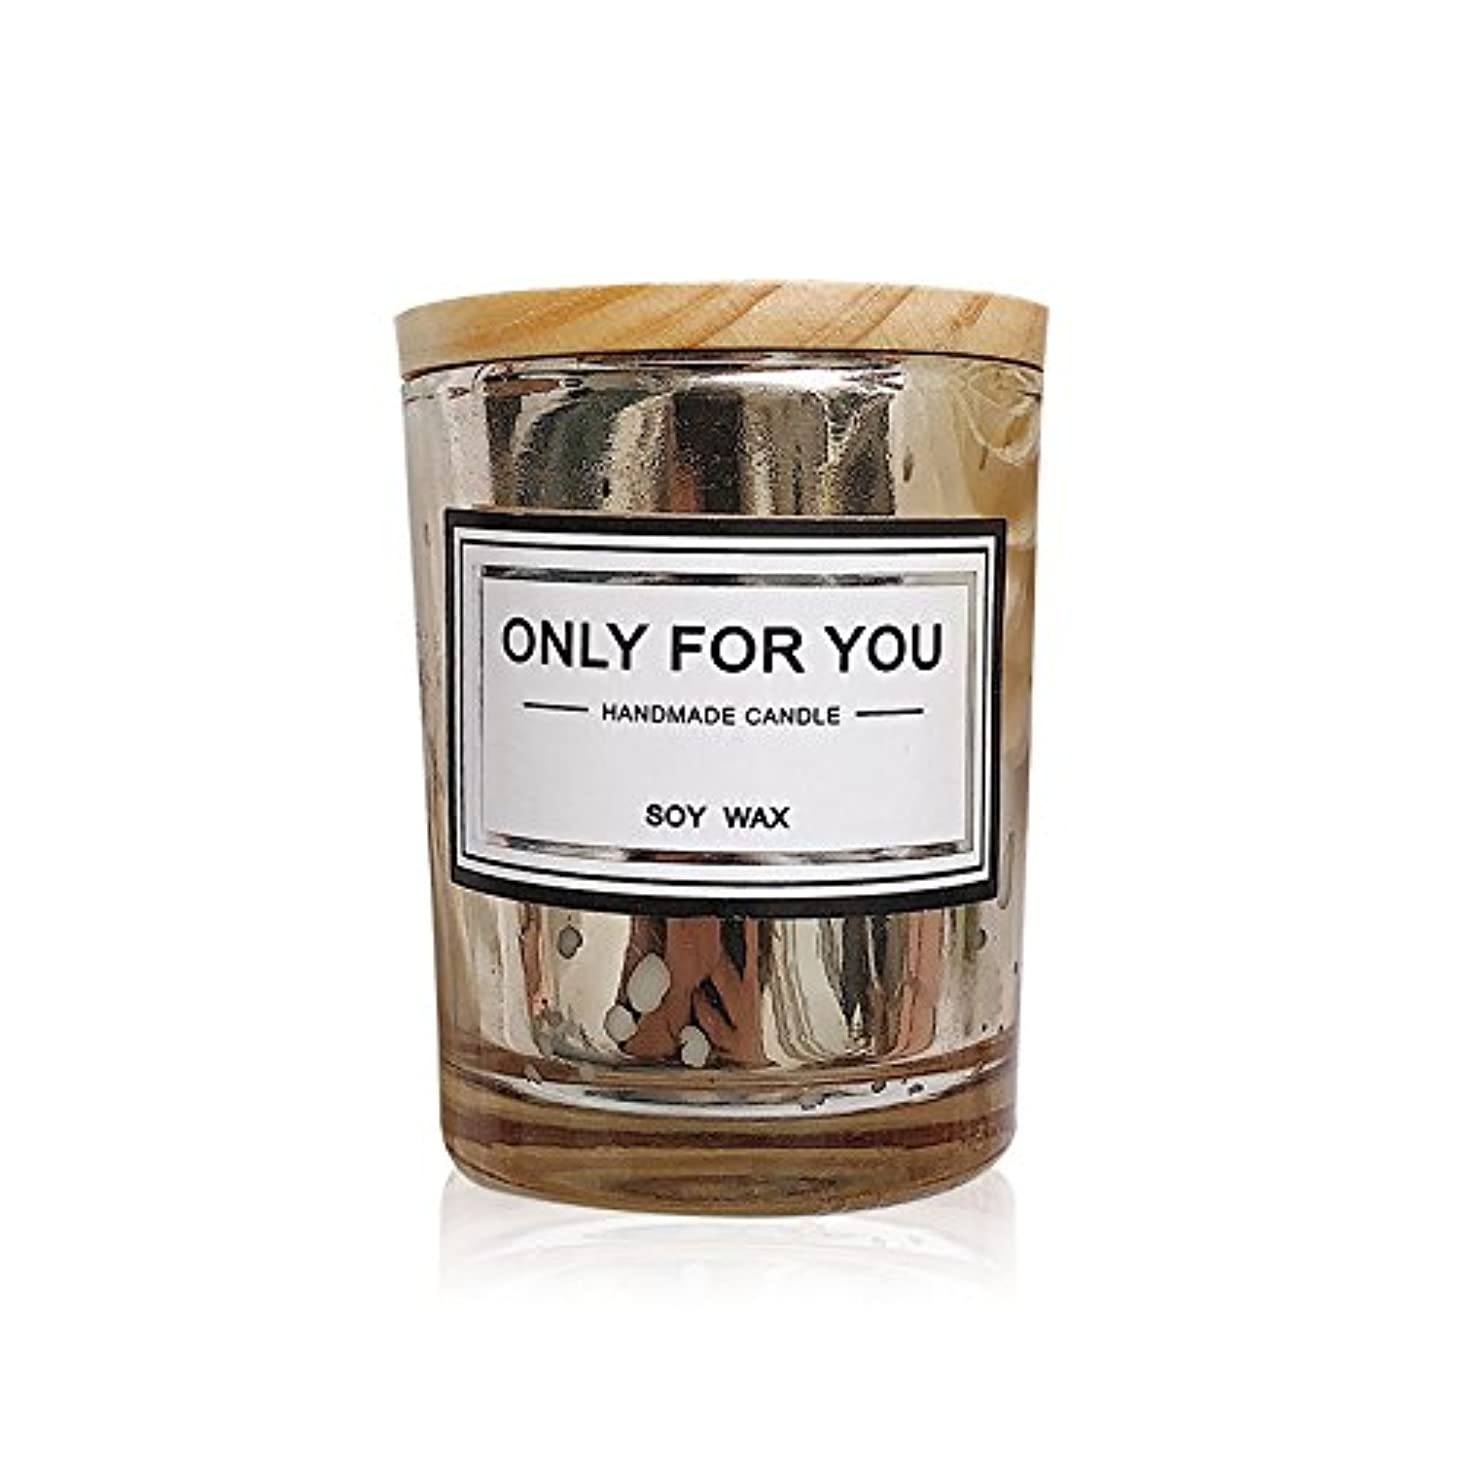 V-style fashion Scented Candles 50 Gram Gold Plated 100% Natural Eco-friendly Soy Wax Glass Candle,Handmade Jar Candles One Piece yctynrjdf